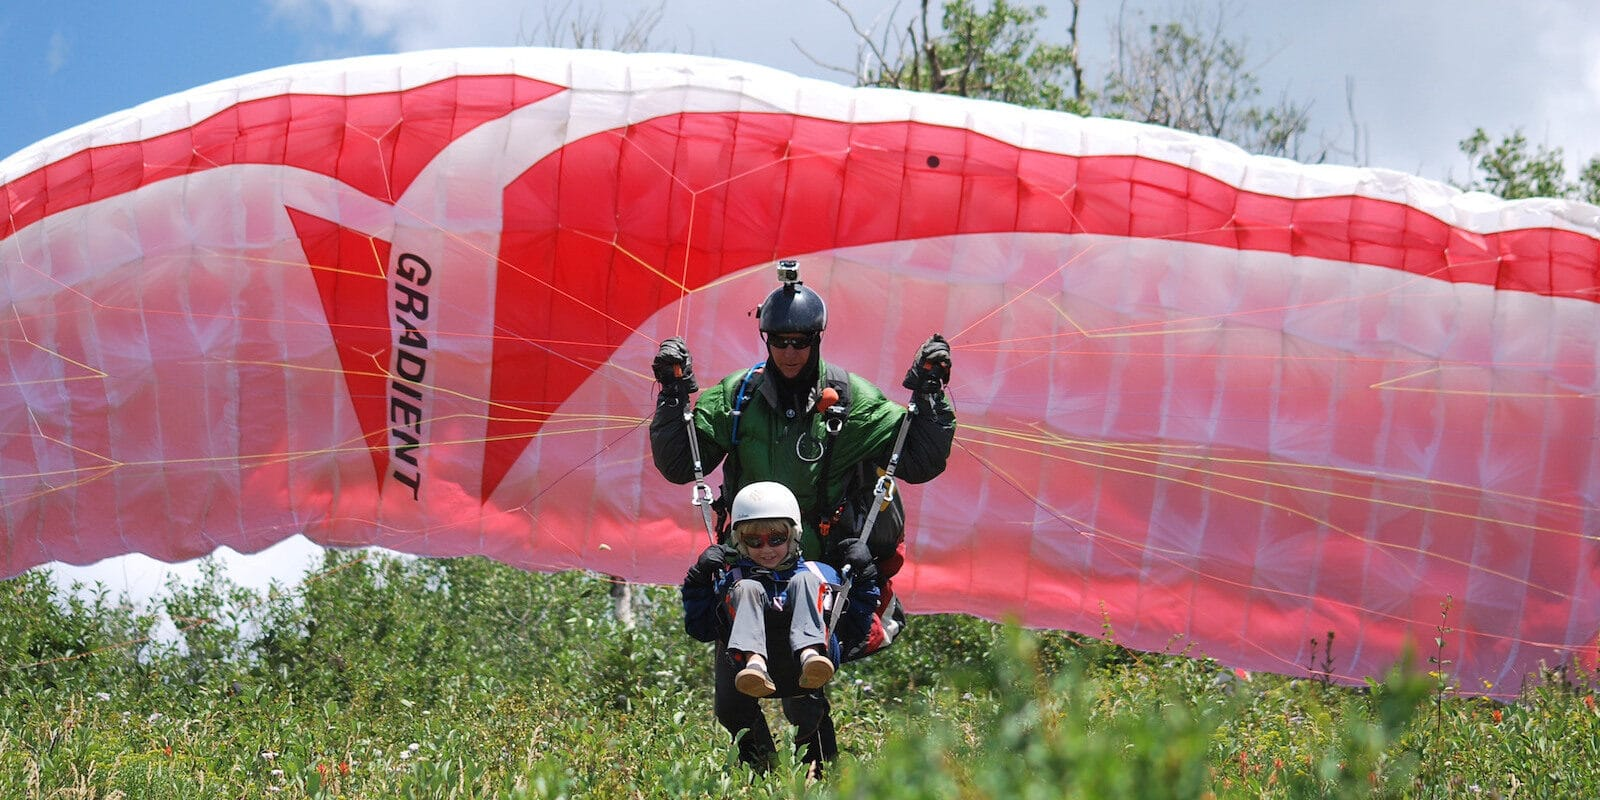 Image of a tandem paraglide with Adventure Paragliding in Glenwood Springs, Colorado